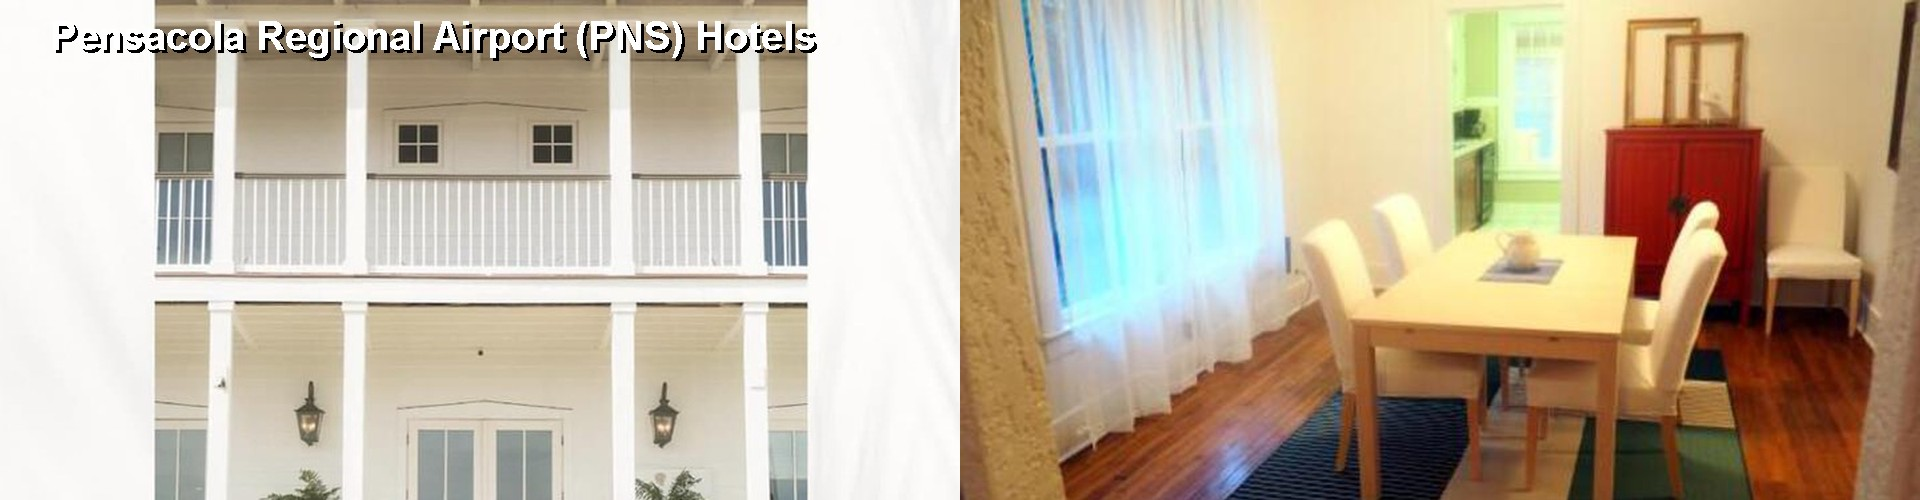 5 Best Hotels near Pensacola Regional Airport (PNS)